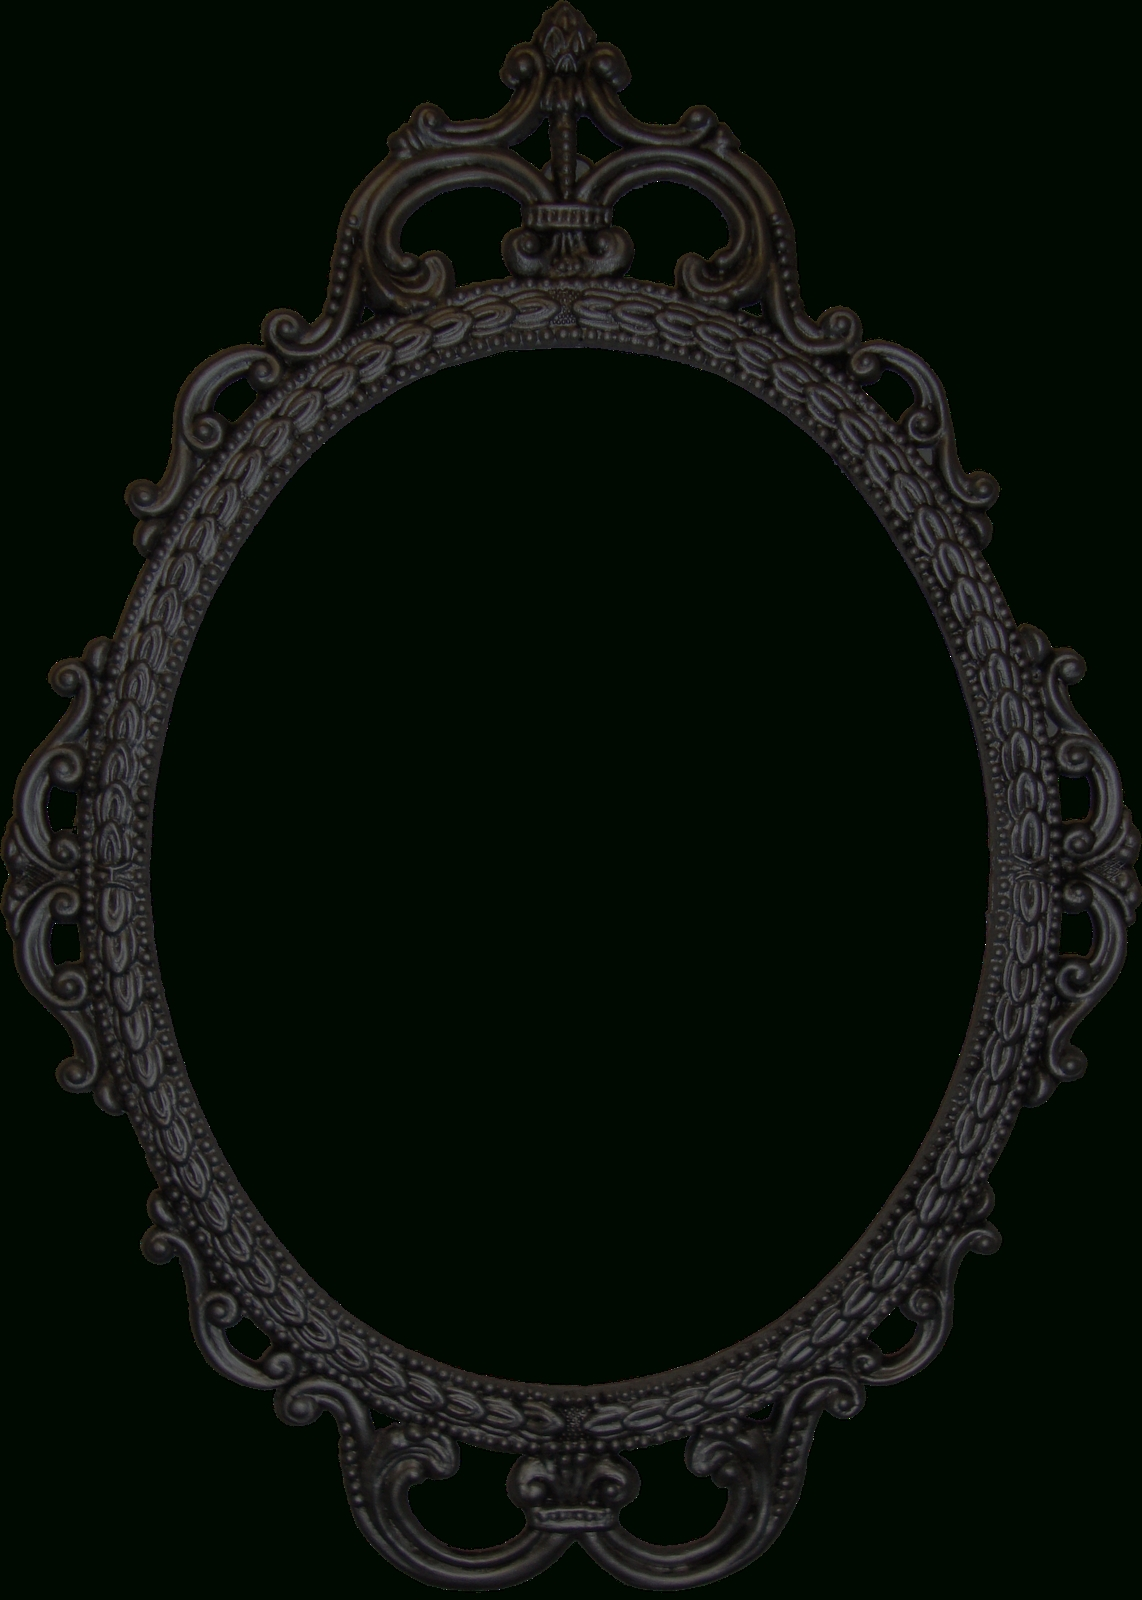 Vintage Clipart Mirror Frame – Pencil And In Color Vintage Clipart Pertaining To Antique Black Mirrors (View 7 of 15)